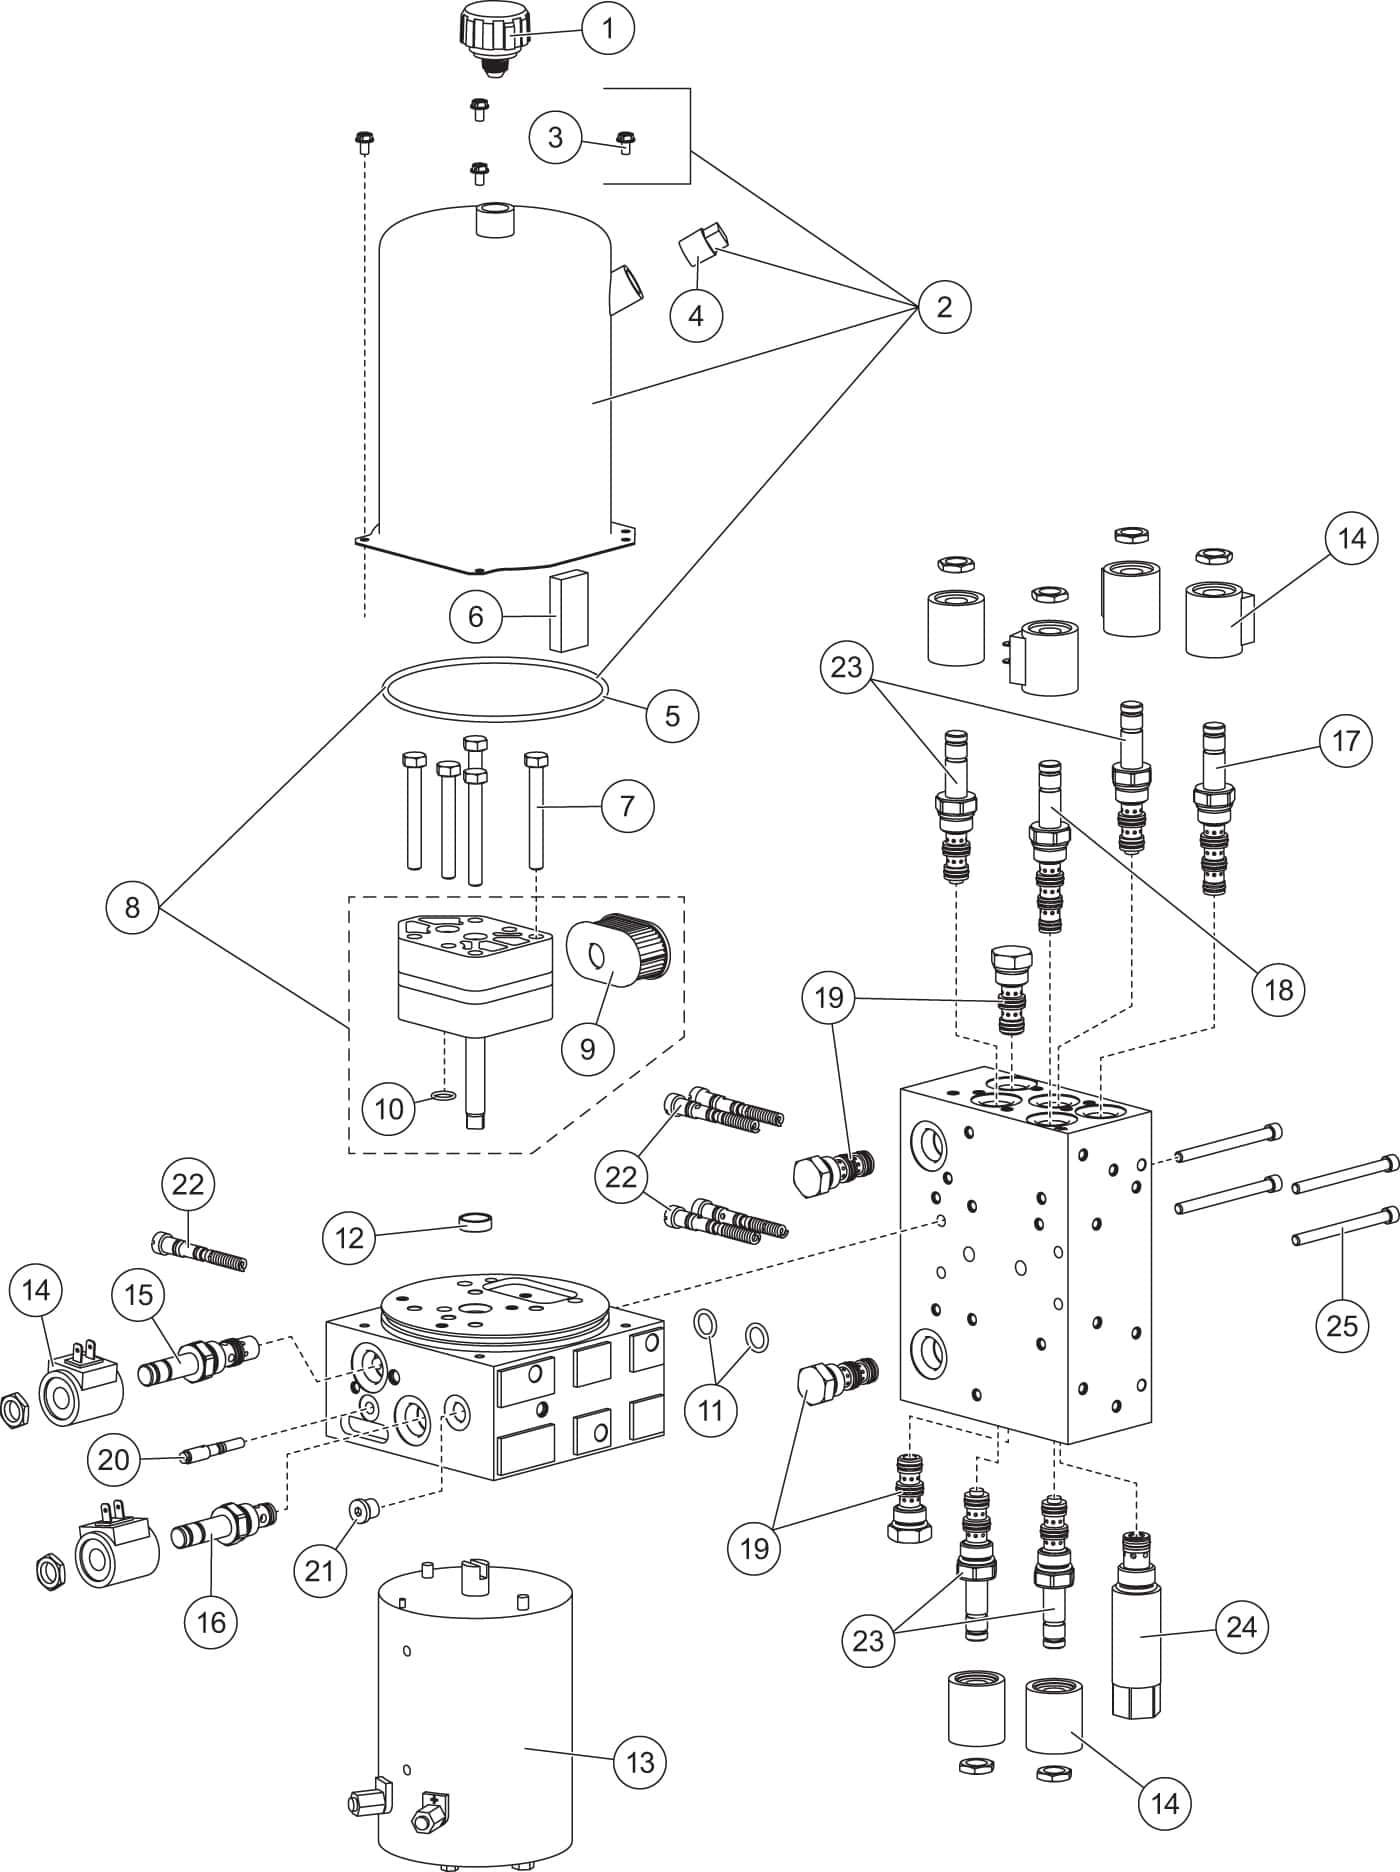 fisher xls - hydraulics diagram